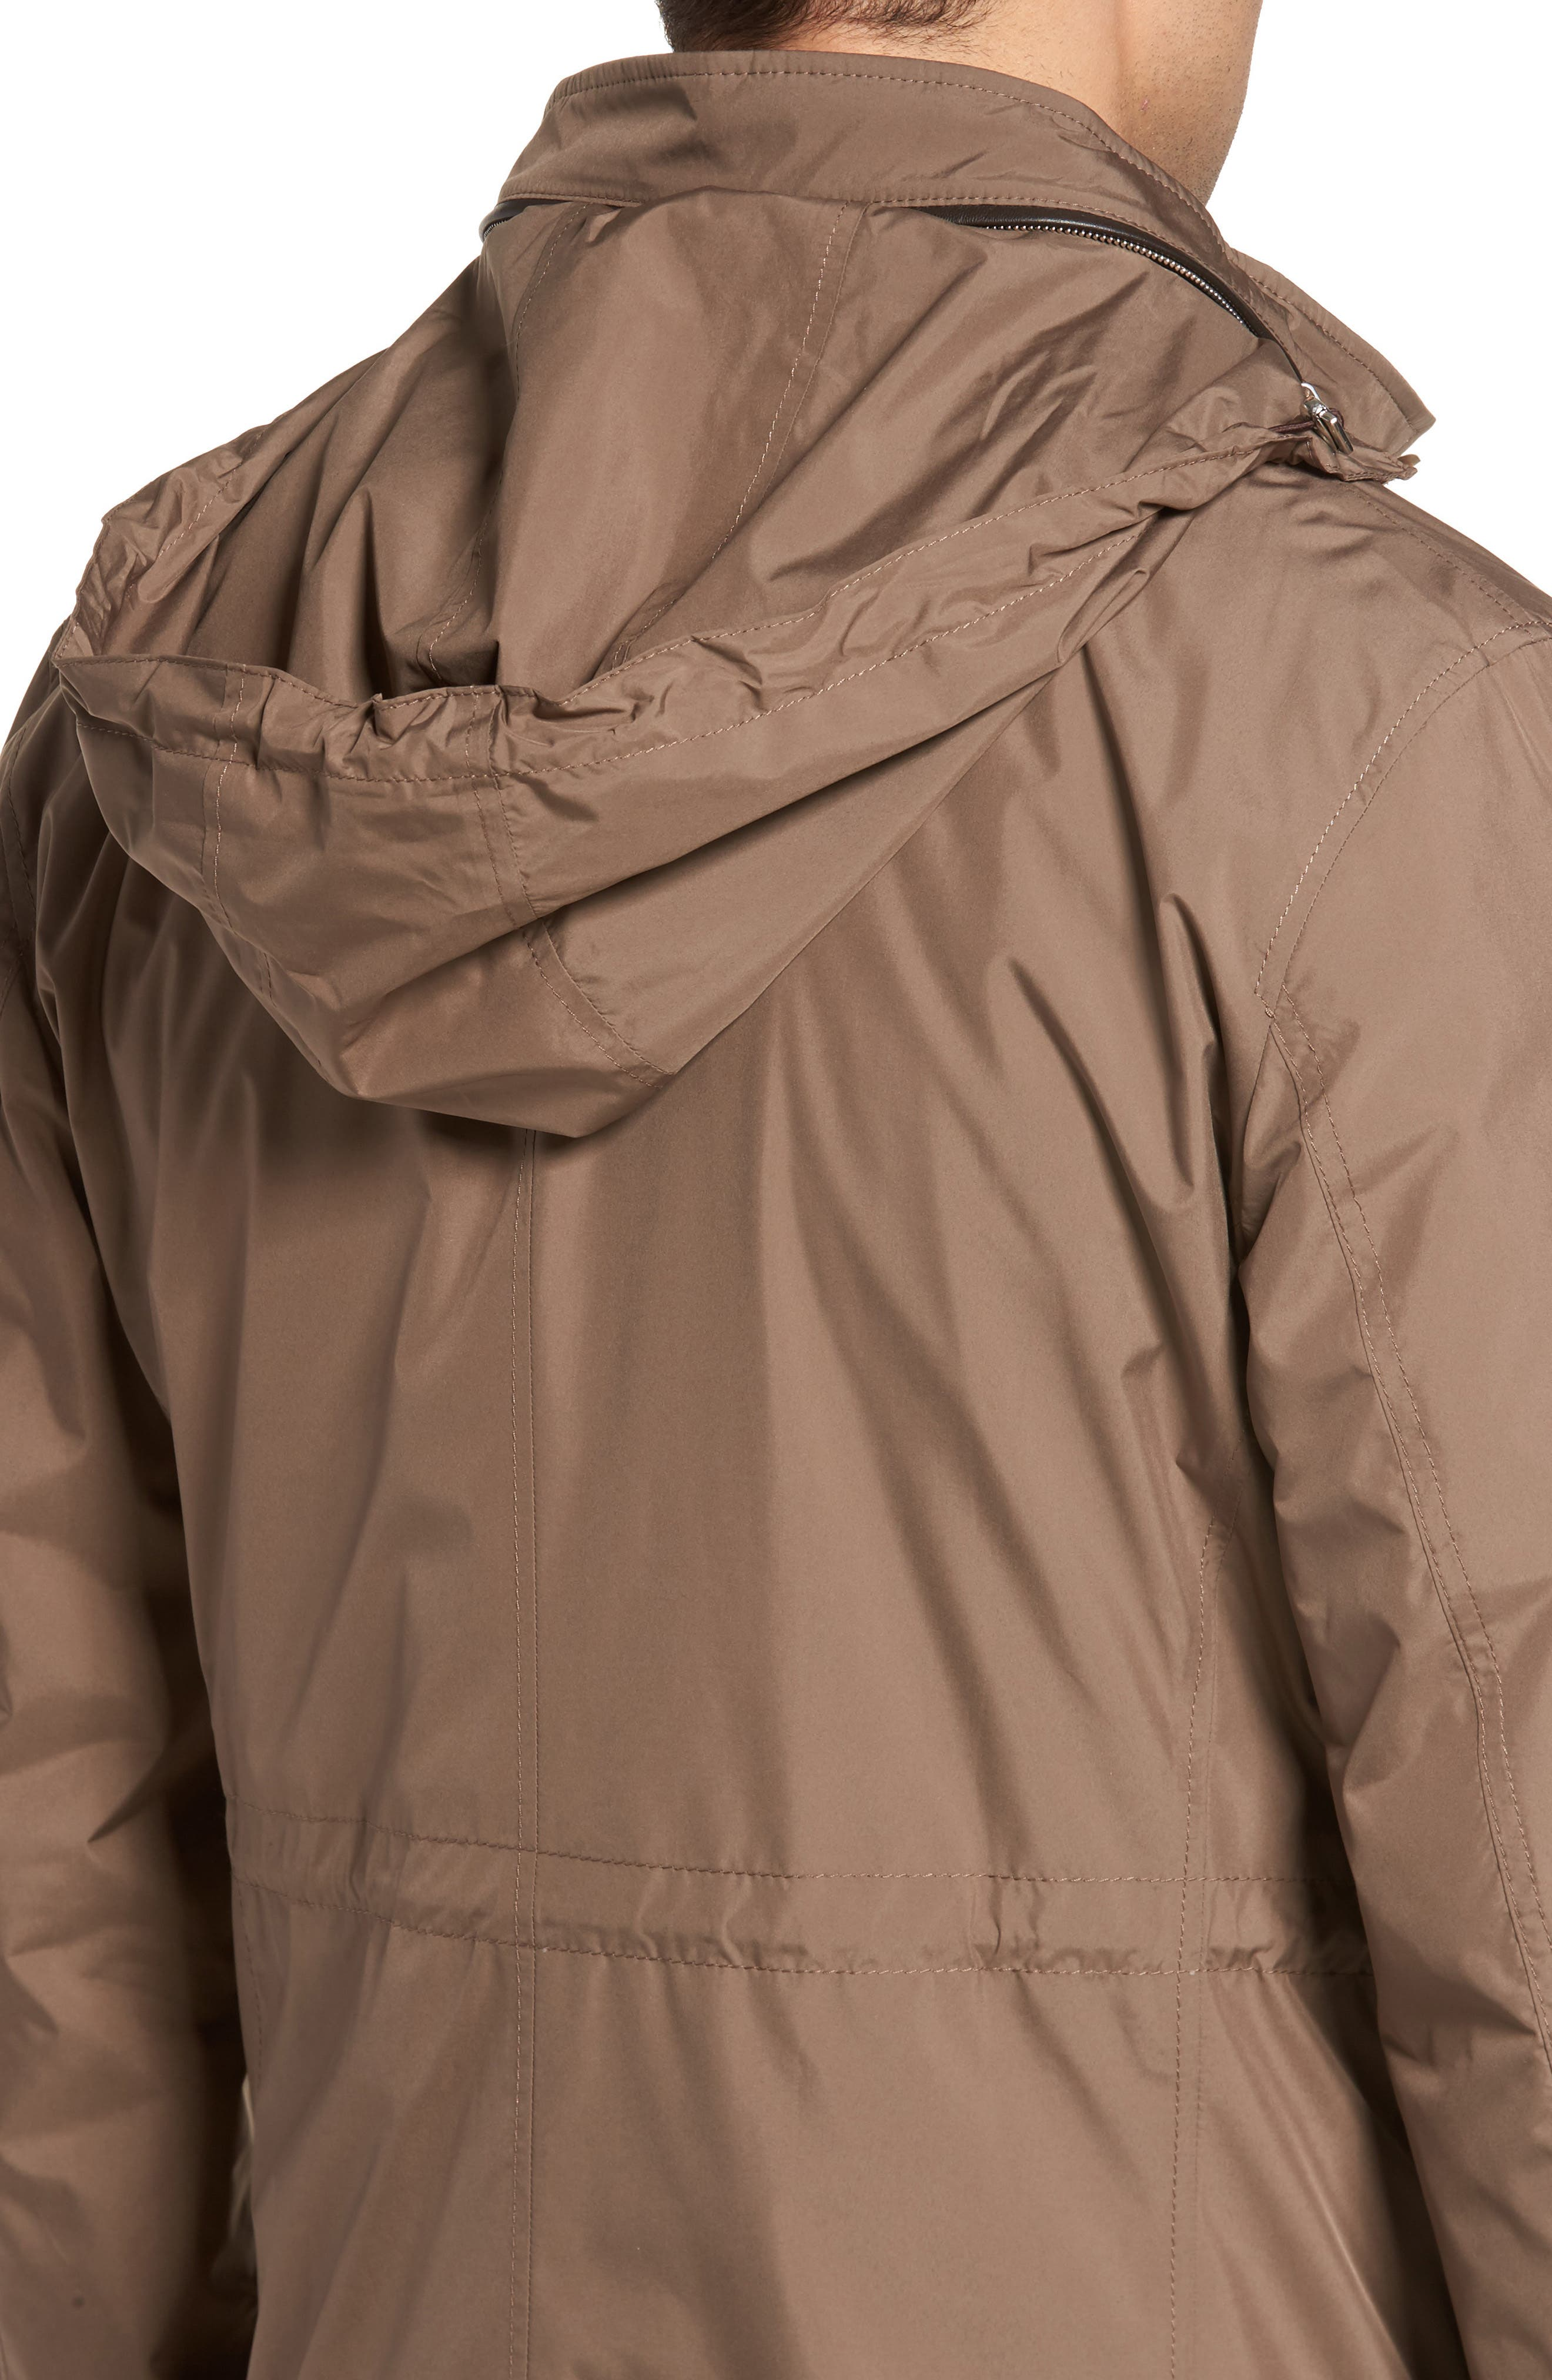 All Weather Discovery Jacket,                             Alternate thumbnail 4, color,                             Dune Surf